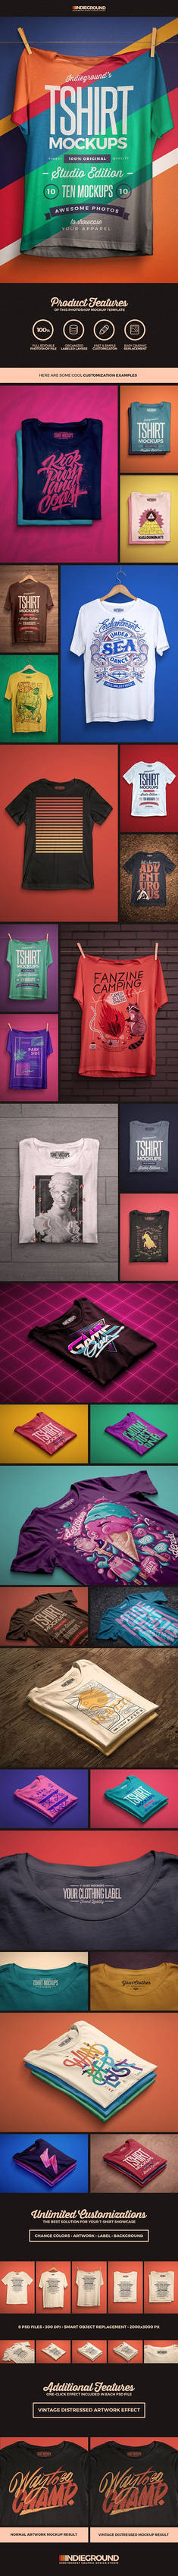 Studio T-shirt Photoshop Mockups